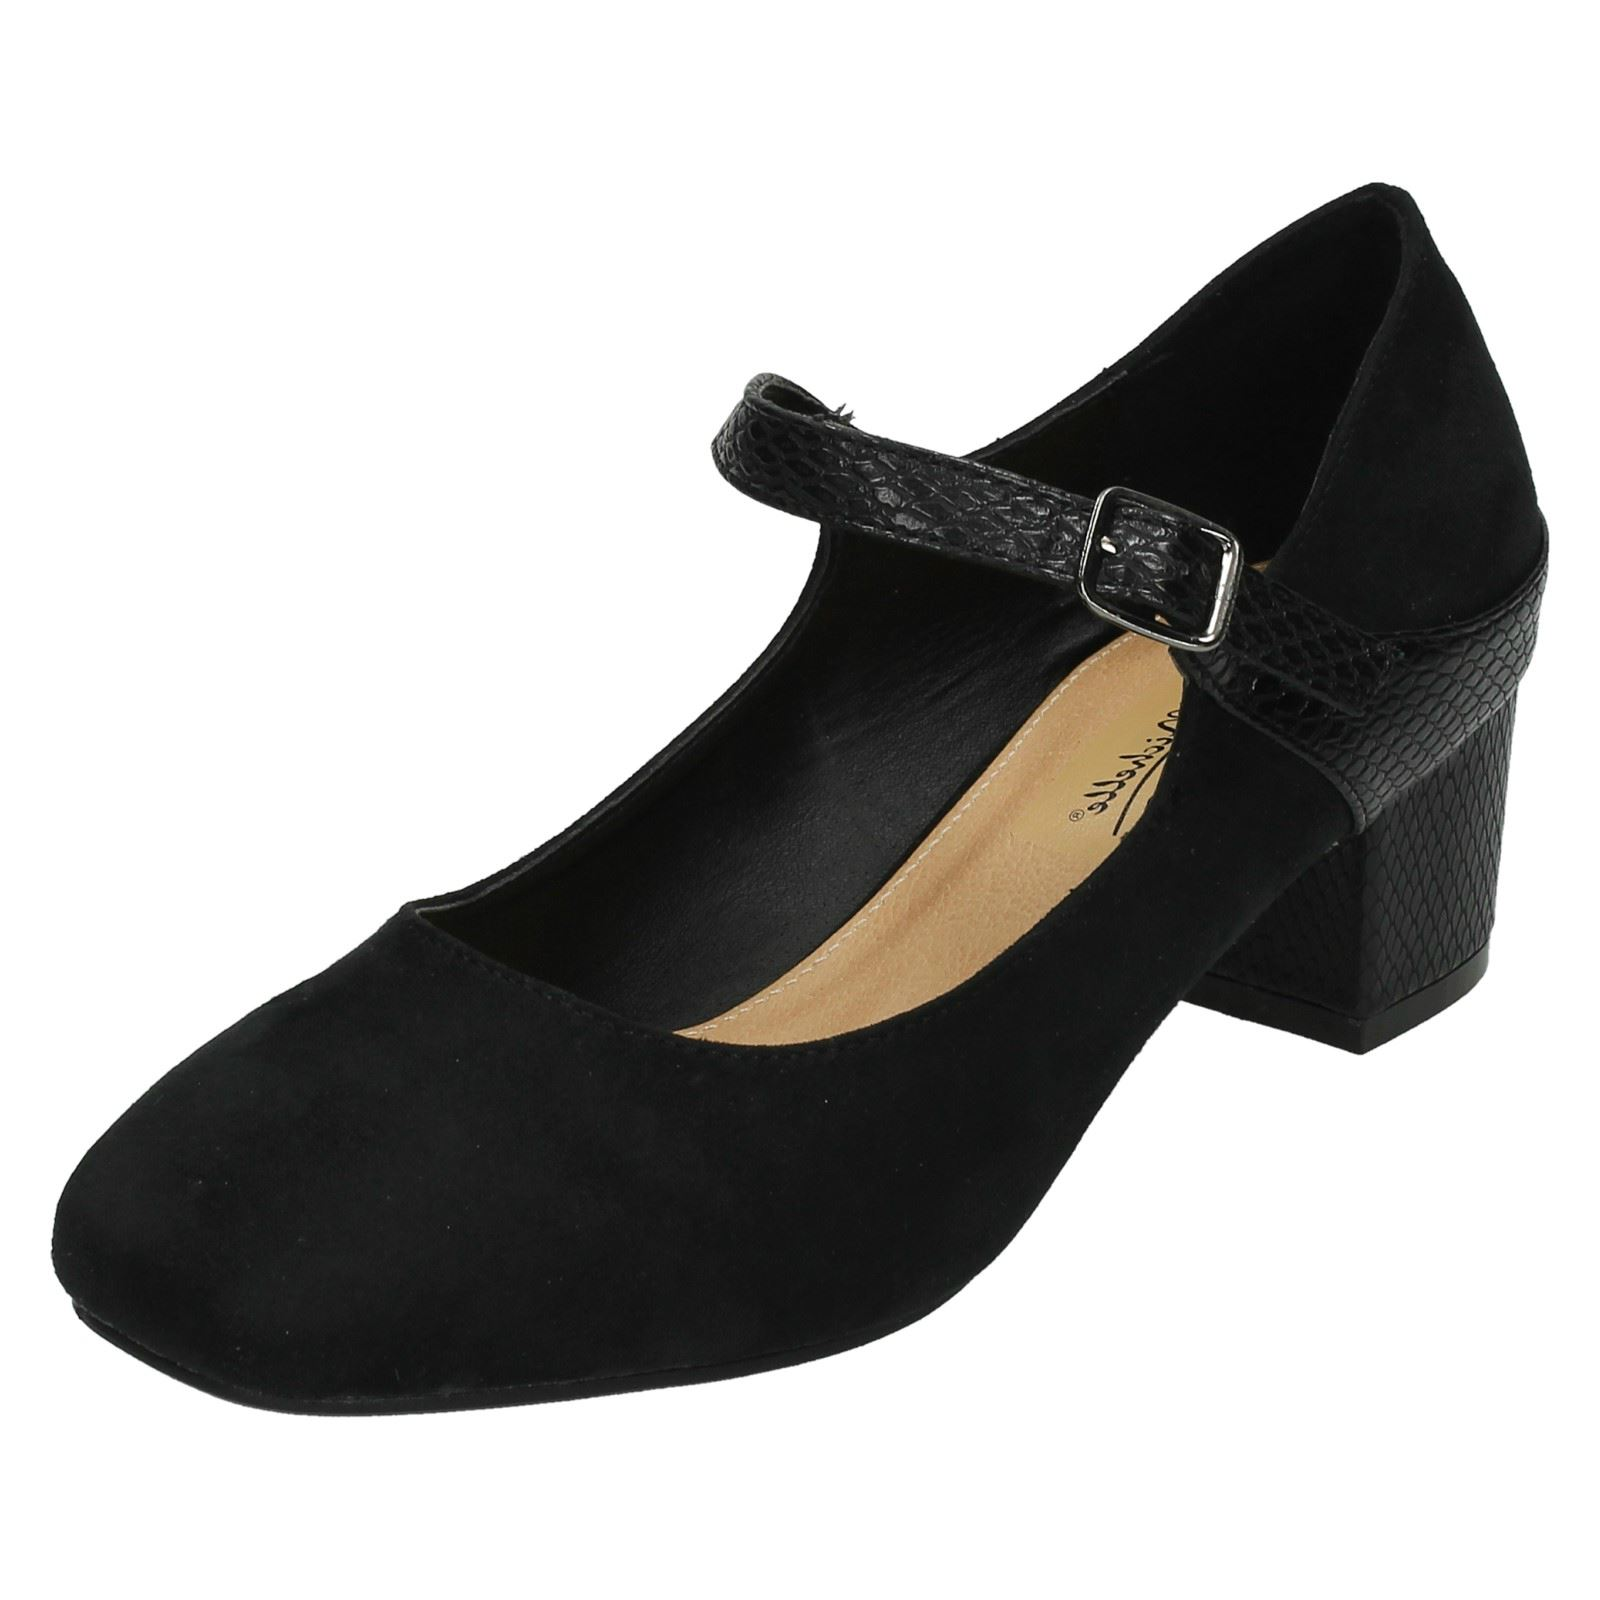 Ladies-Anne-Michelle-Wide-Fitting-Mid-Chunky-Heel-Mary-Jane-Shoes